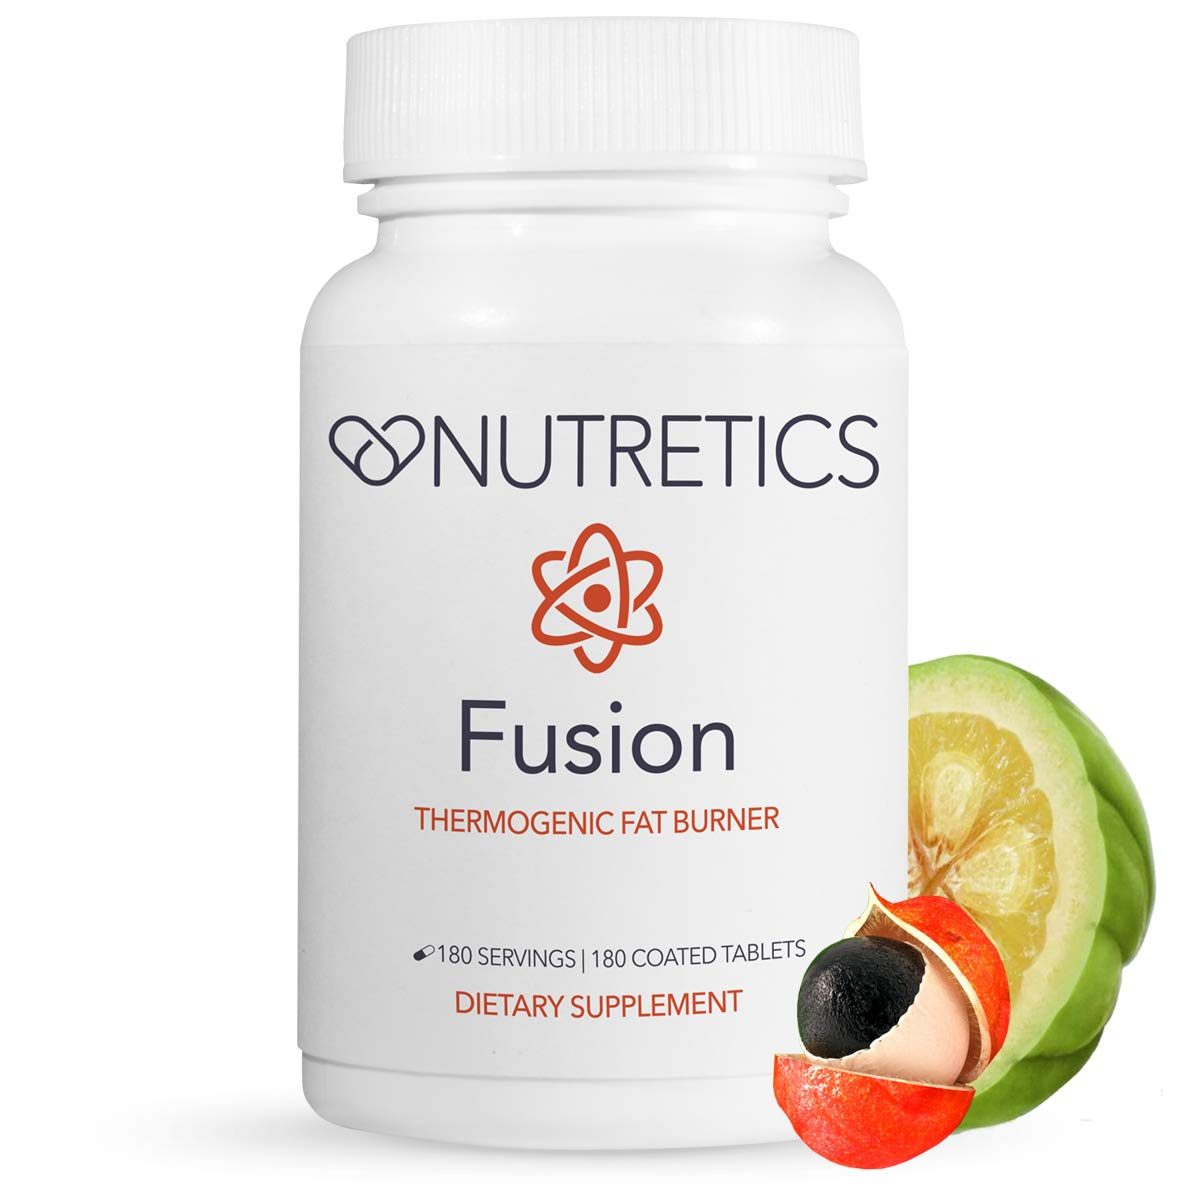 Nutretics Fusion Thermogenic Fat Burner for Men and Women, Weight Loss Supplement/Diet Pills for Fat Burning, Muscle Preservation, Boosted Metabolism, Clean Energy, Appetite Suppressant, 180 Tablets by Nutretics